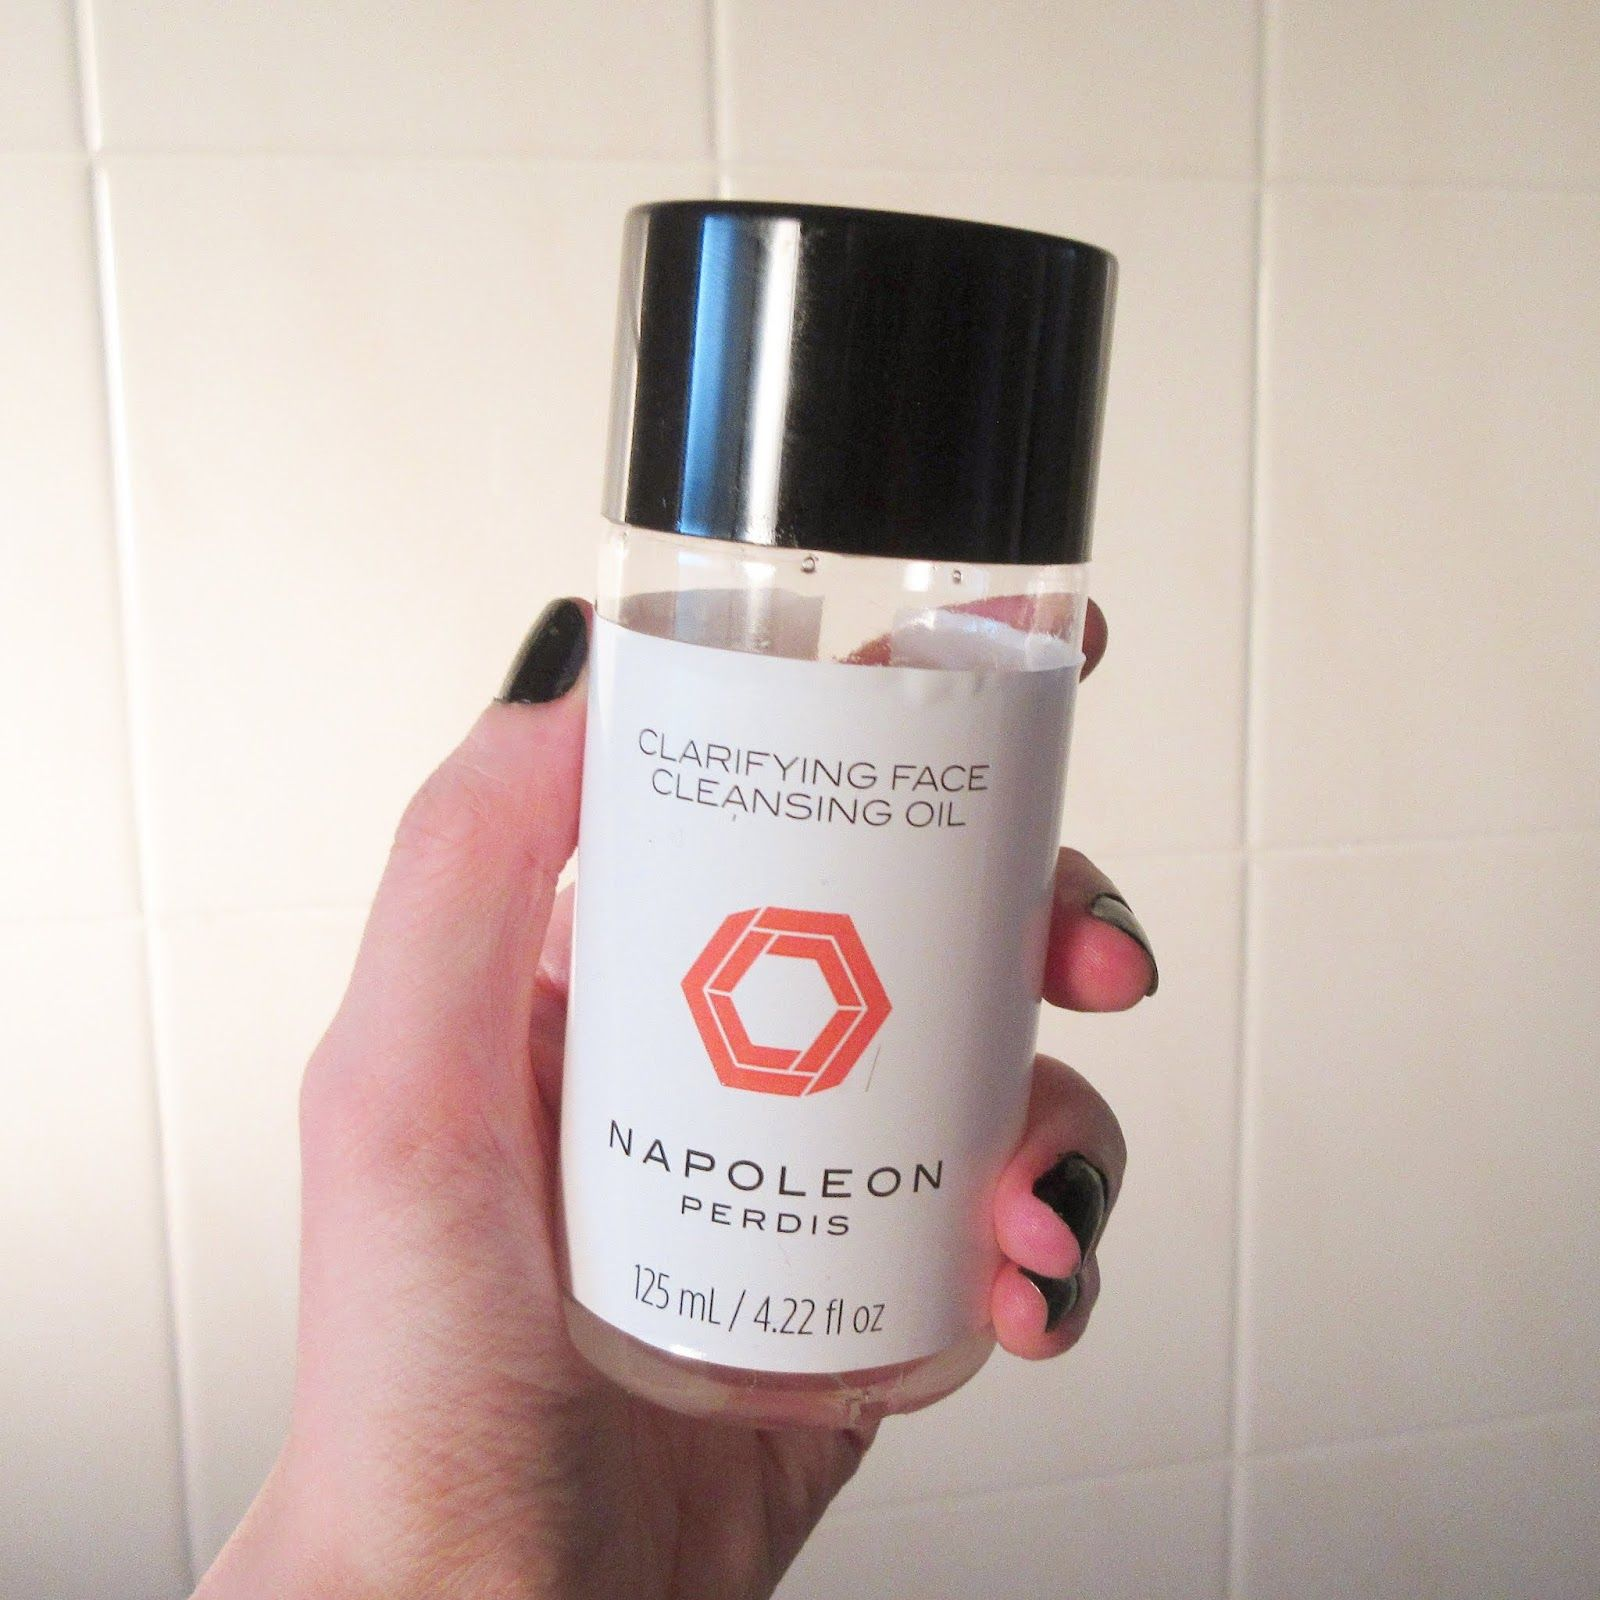 Napoleon Perdis Clarifying Cleansing Oil Review